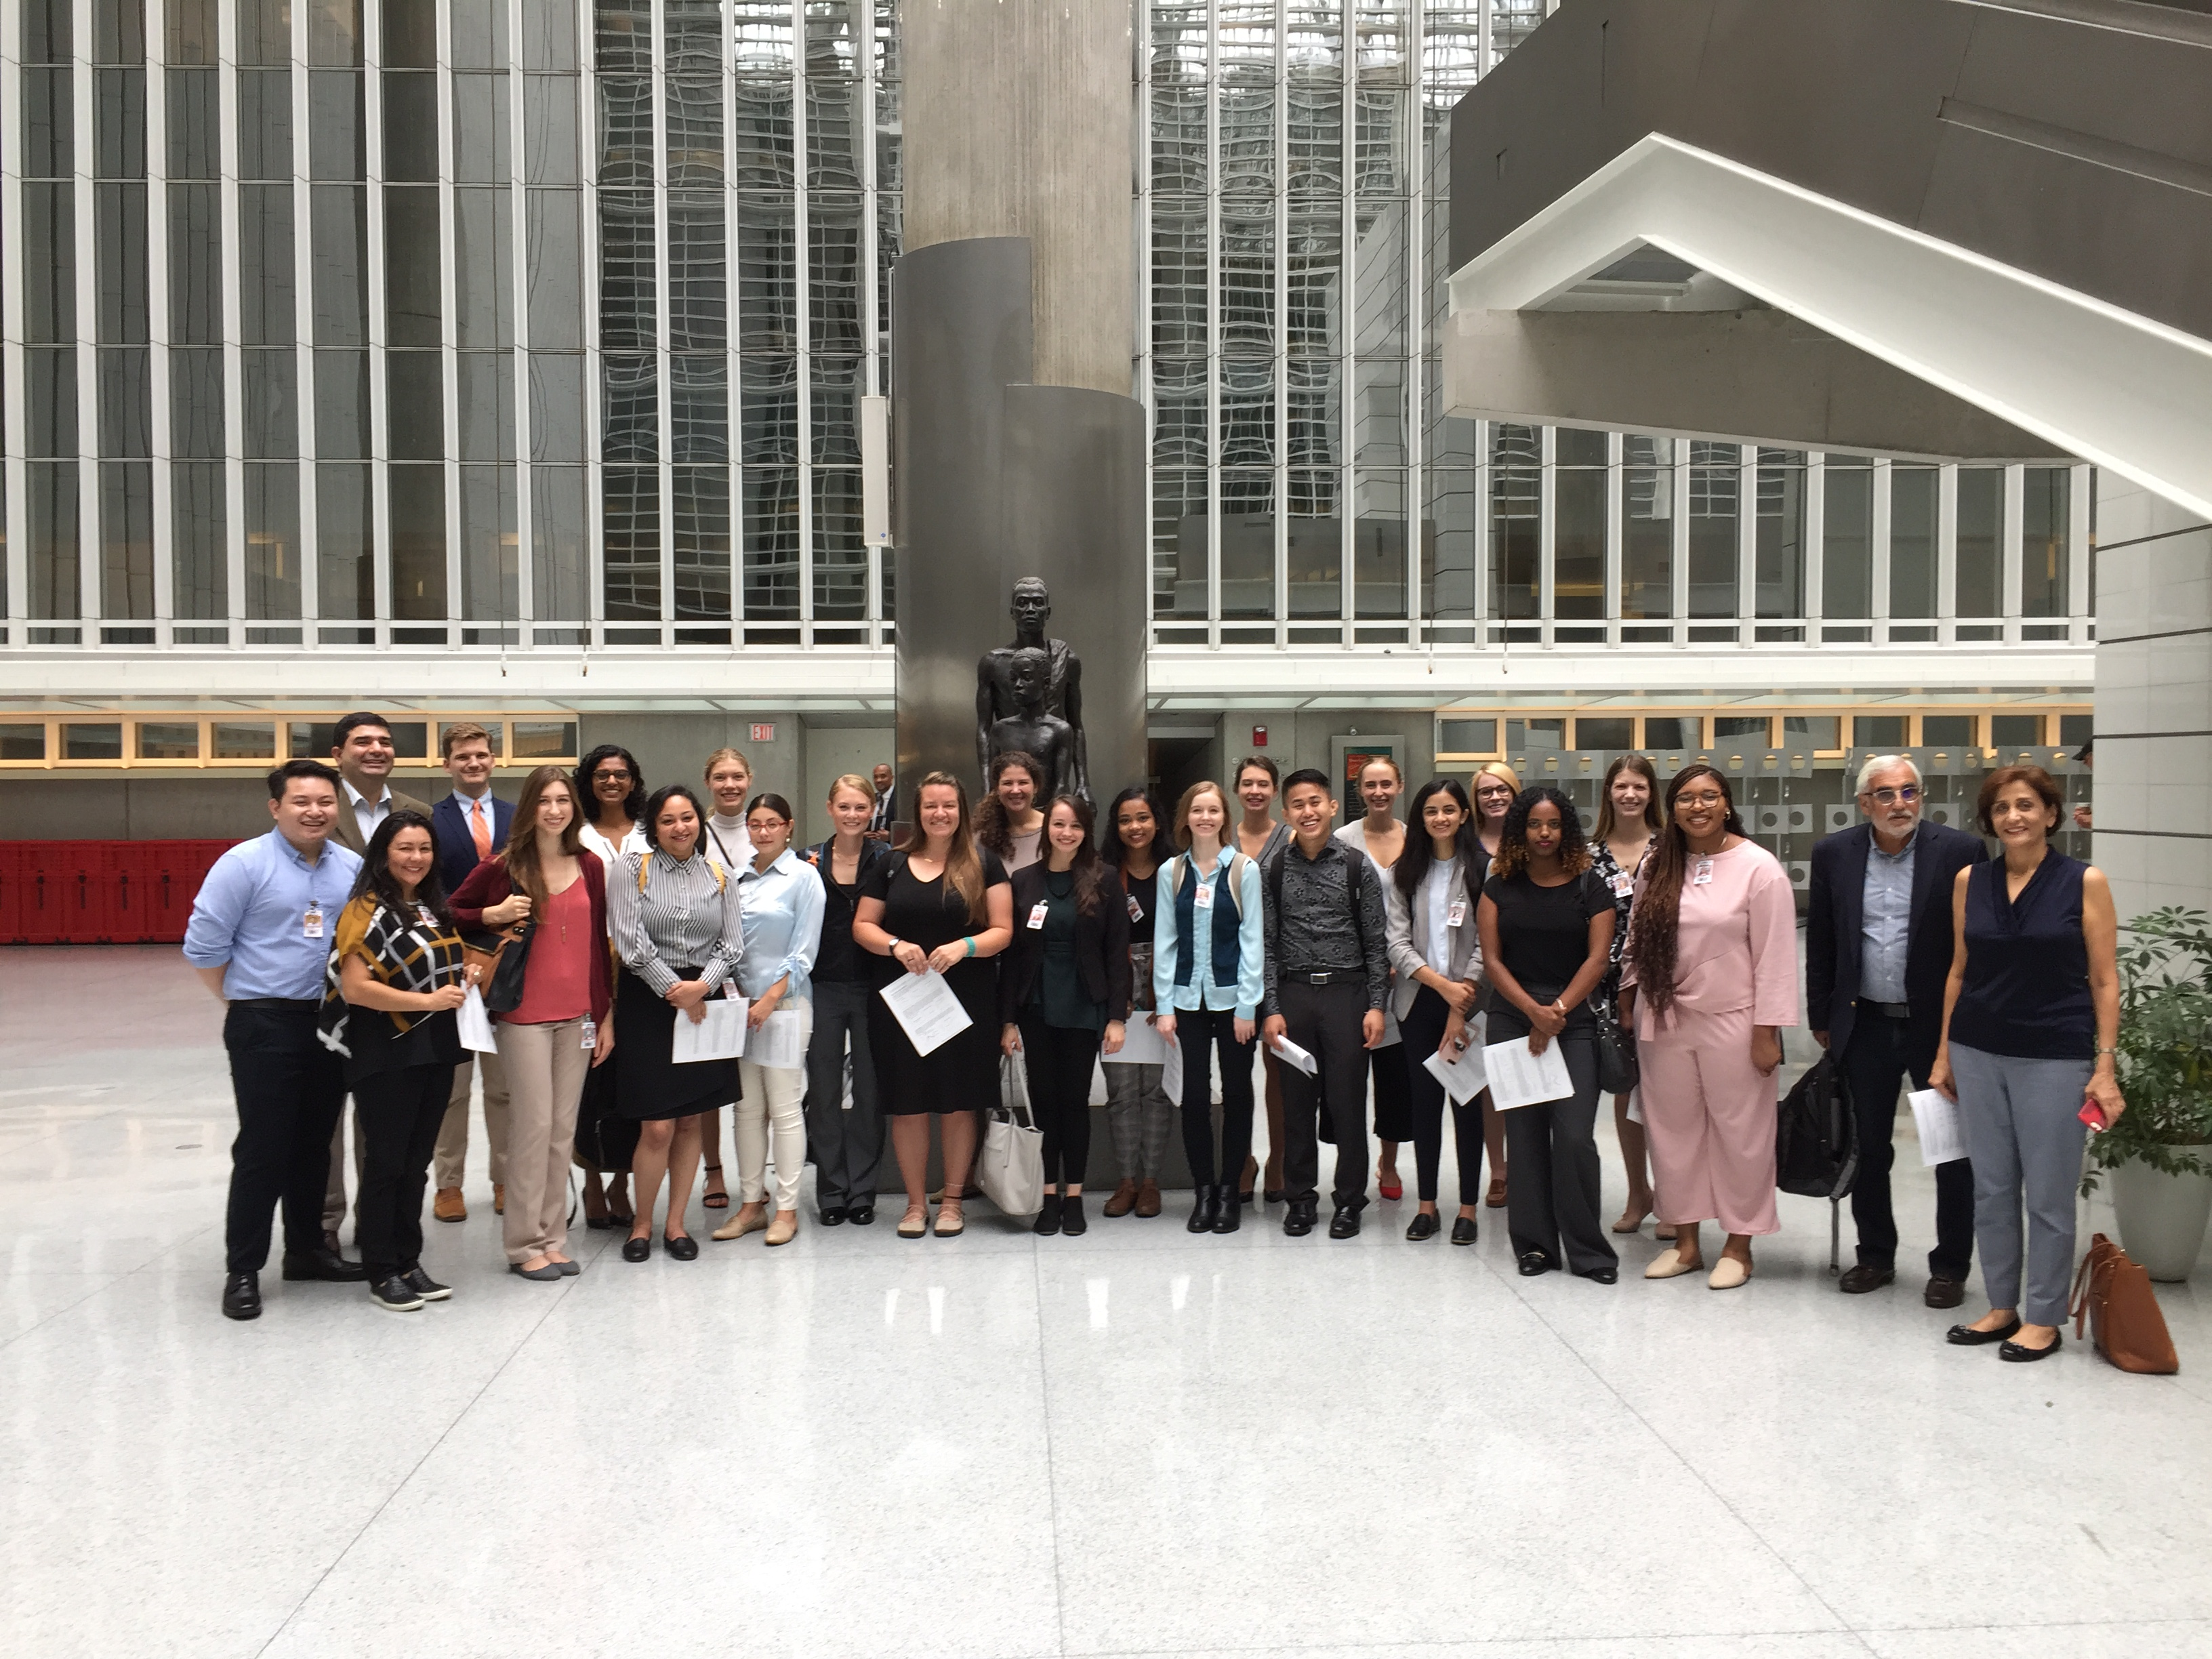 Students and faculty pose in the atrium of the World Bank building.